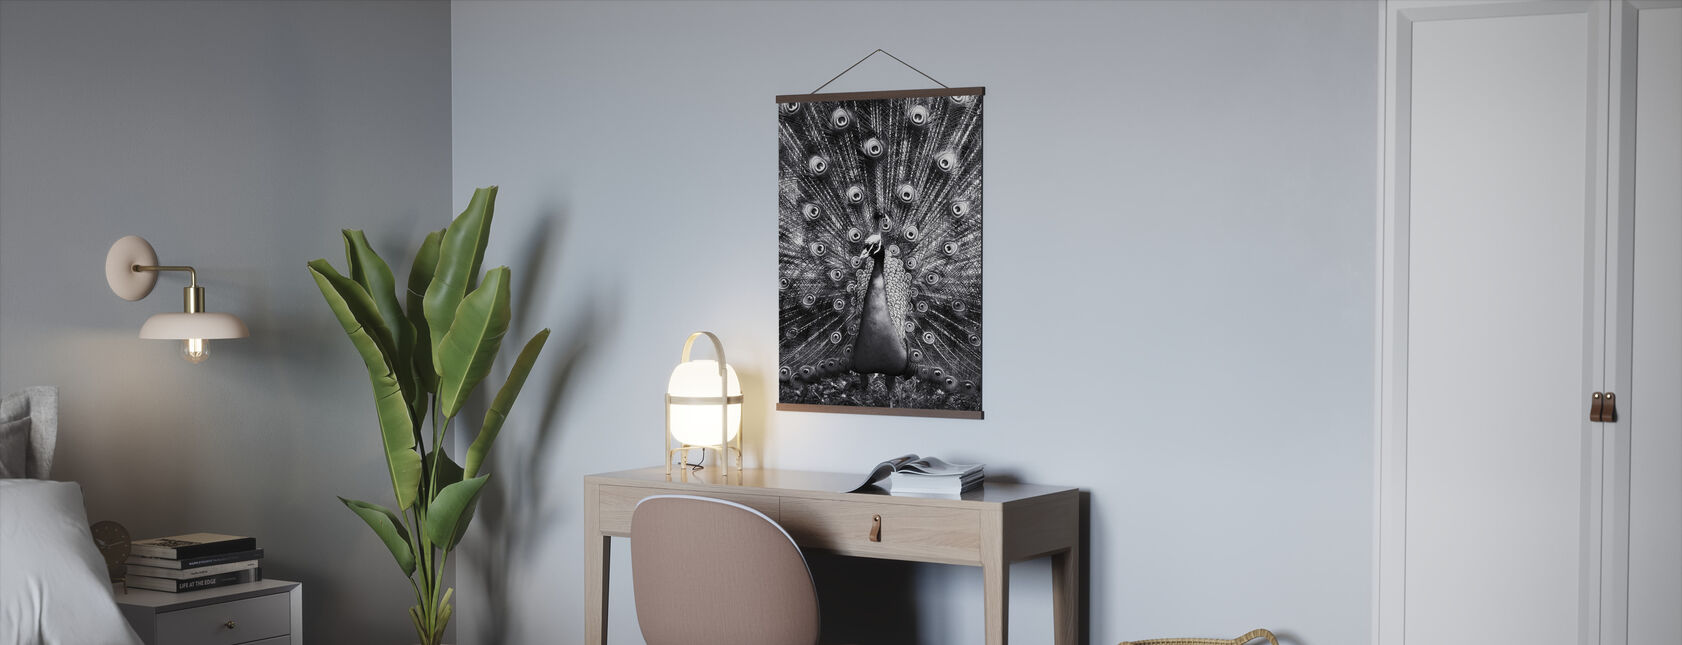 Peacock - Poster - Office